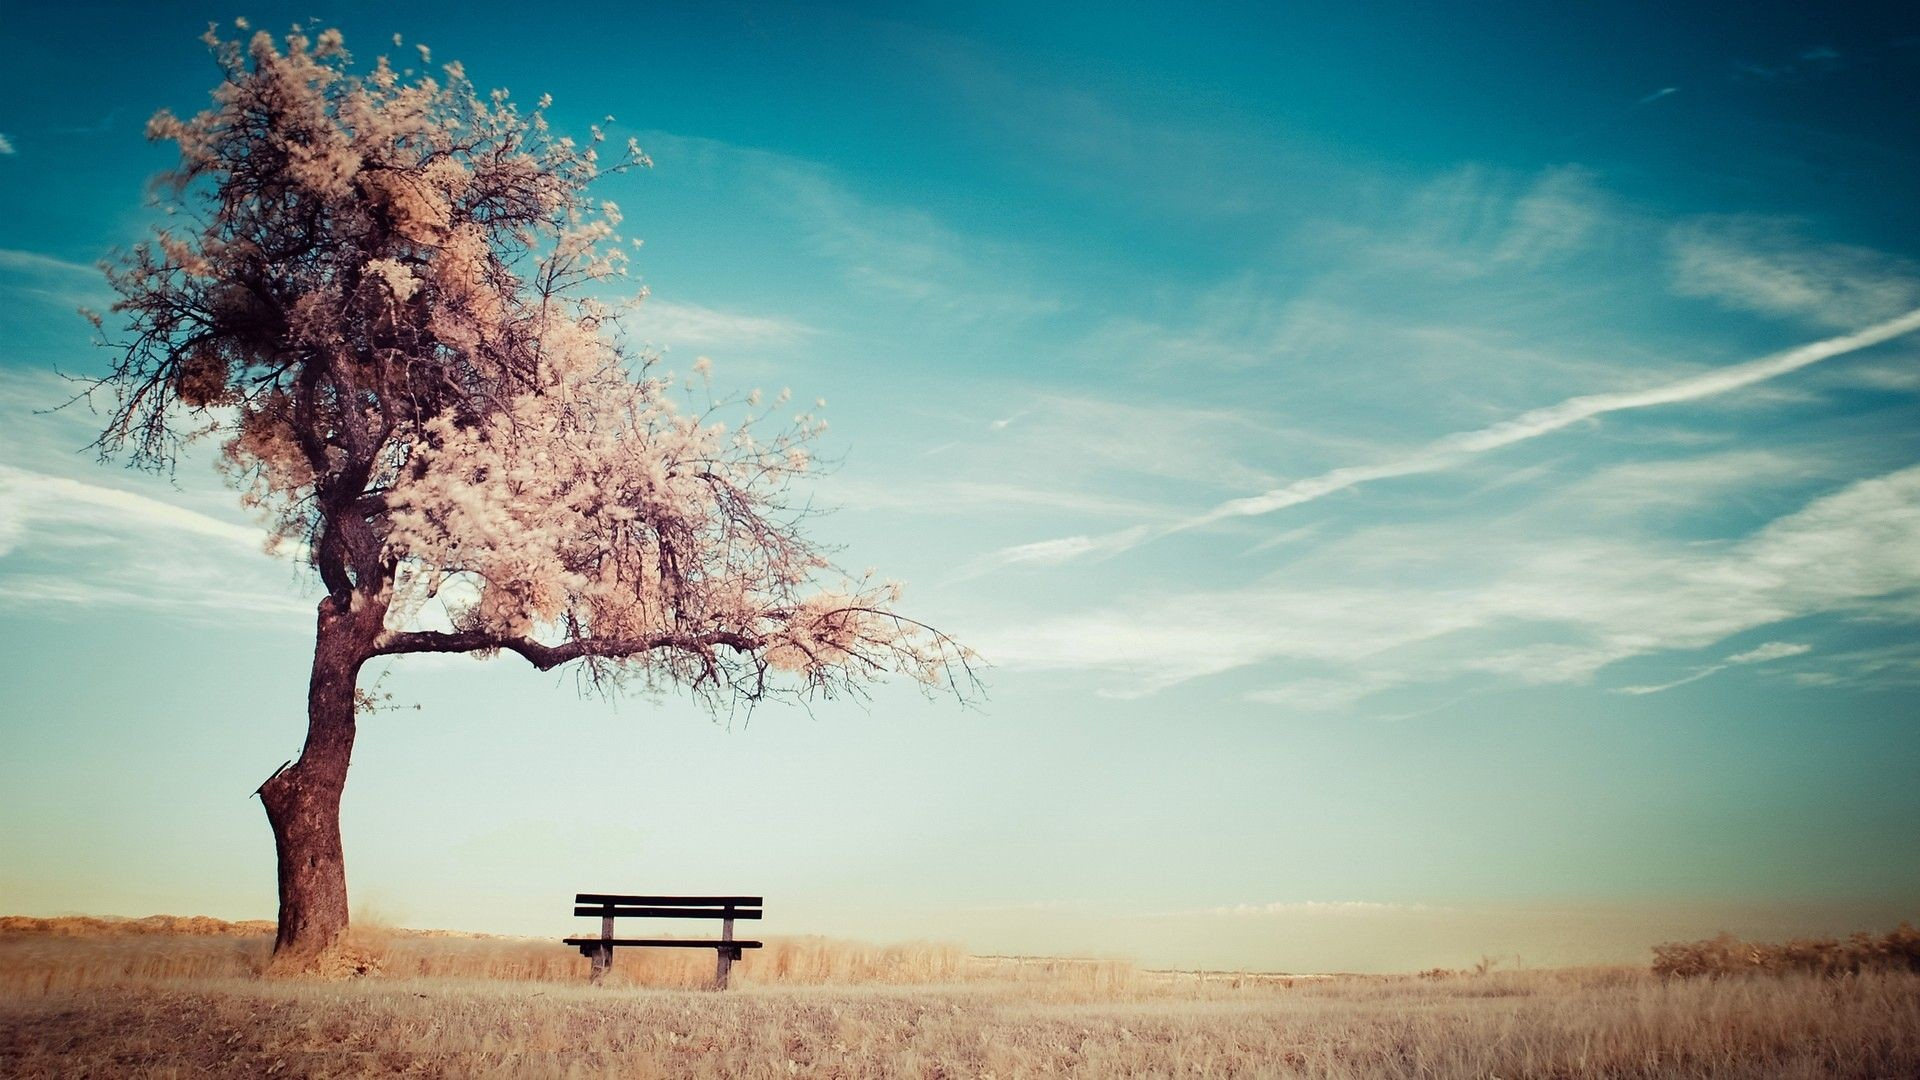 alone cherry blossom tree beside the bench wallpaper